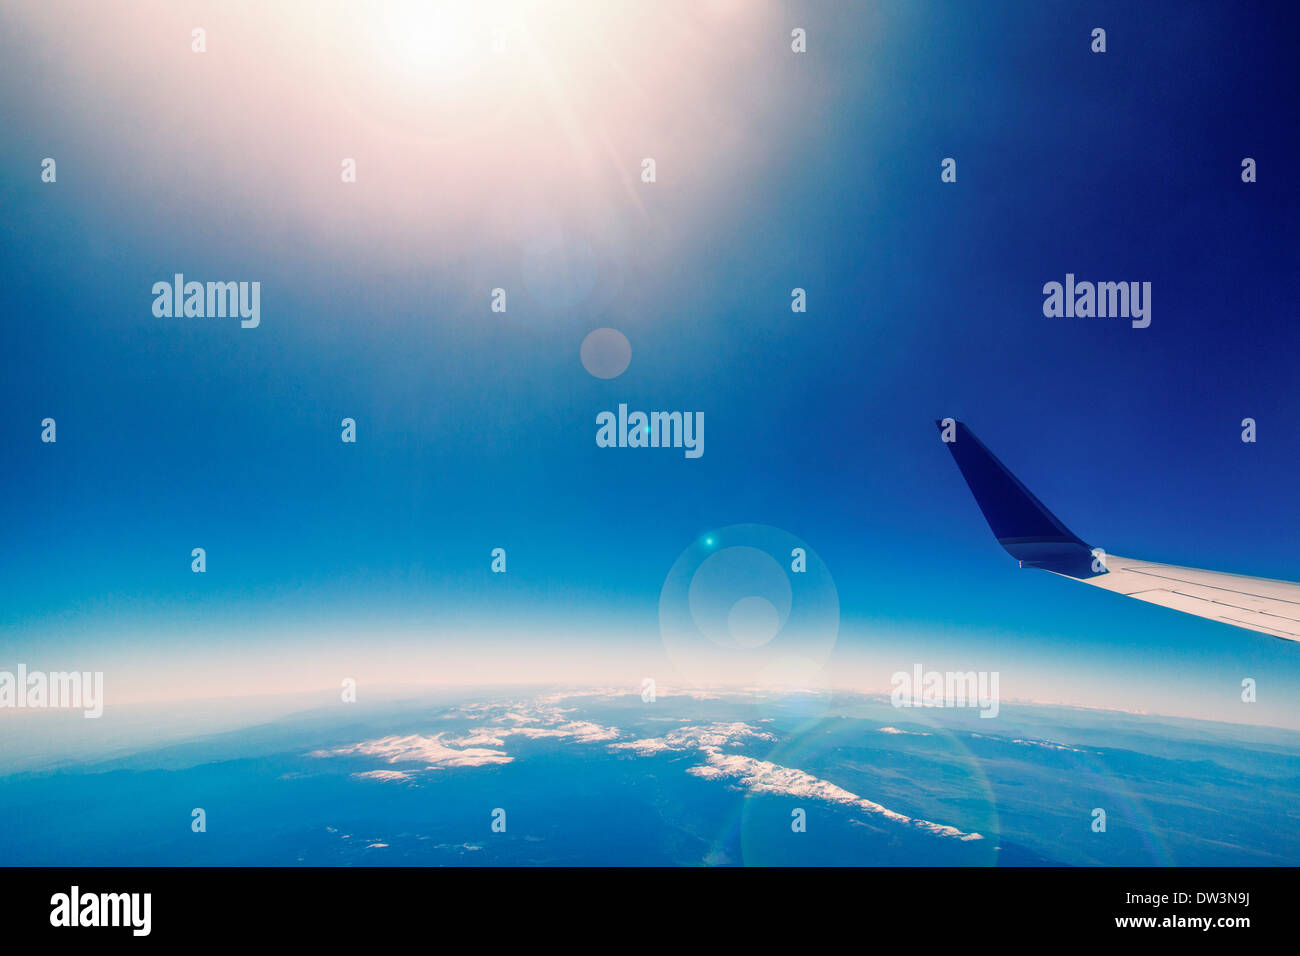 Airplane wing over curved earth - Stock Image